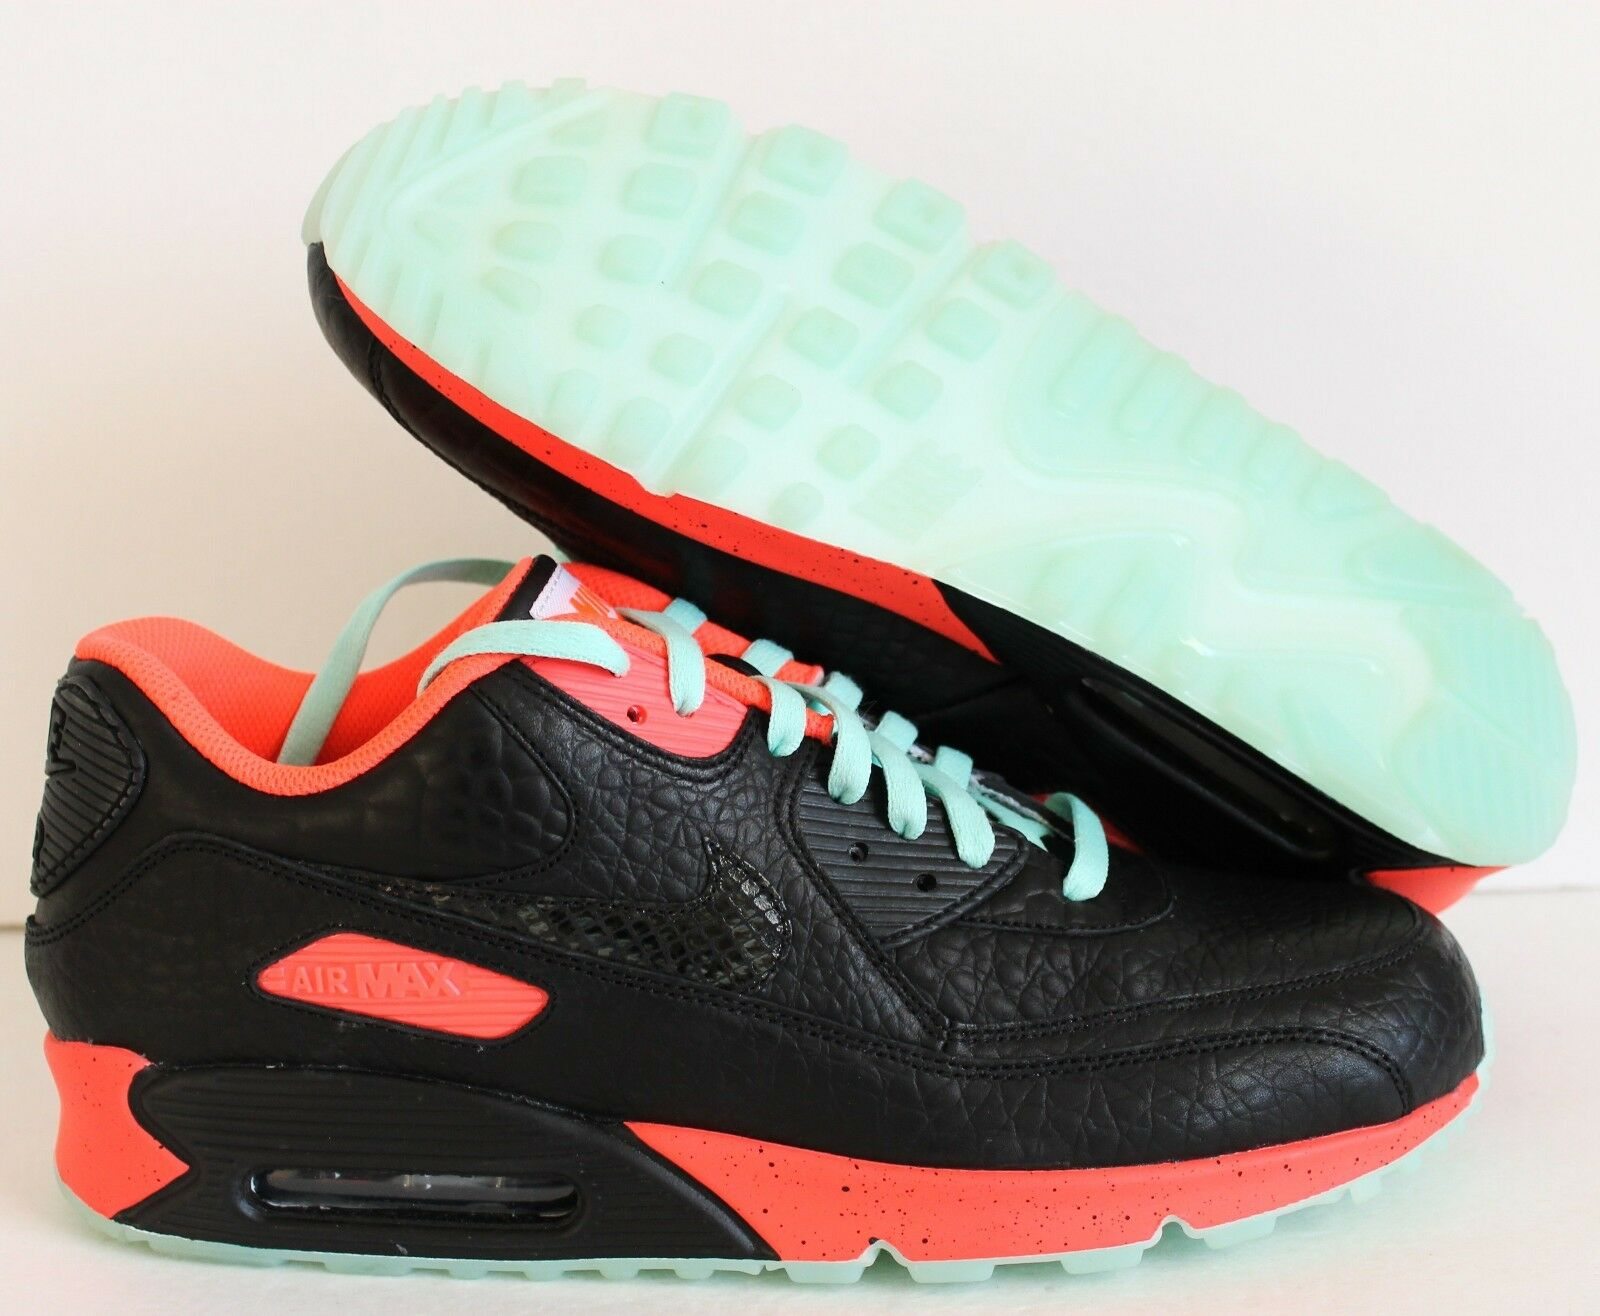 NIKE AIR MAX 90 ID PREMIUM ELEPHANT PRINT BLACK Price reduction The most popular shoes for men and women